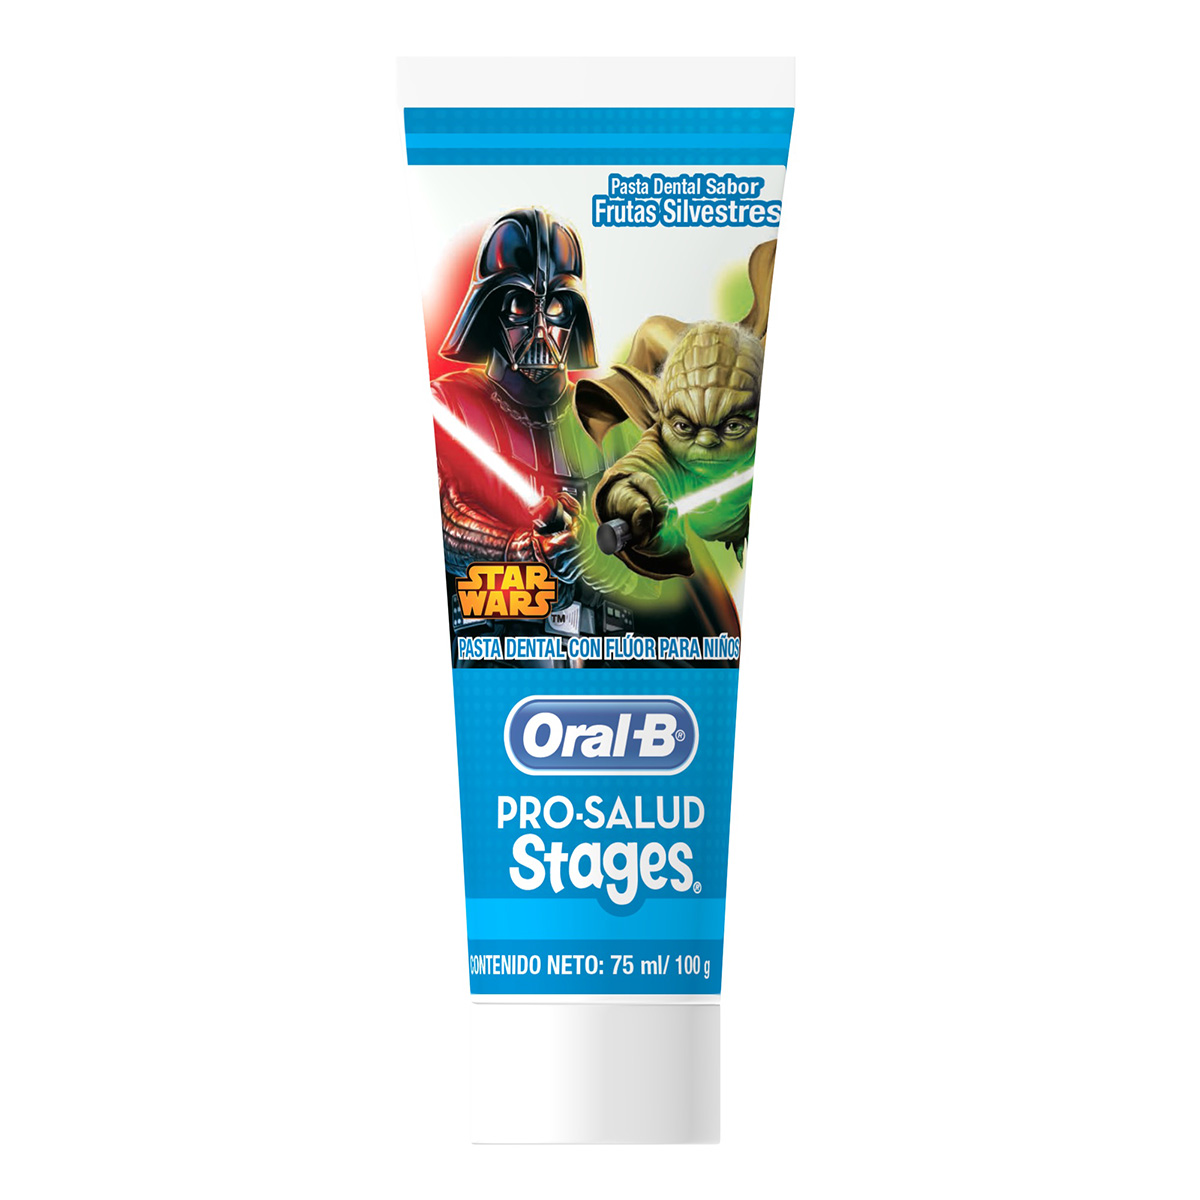 PASTA DISNEY PRO-SALUD (STAGES) STAR WARS ORAL-B